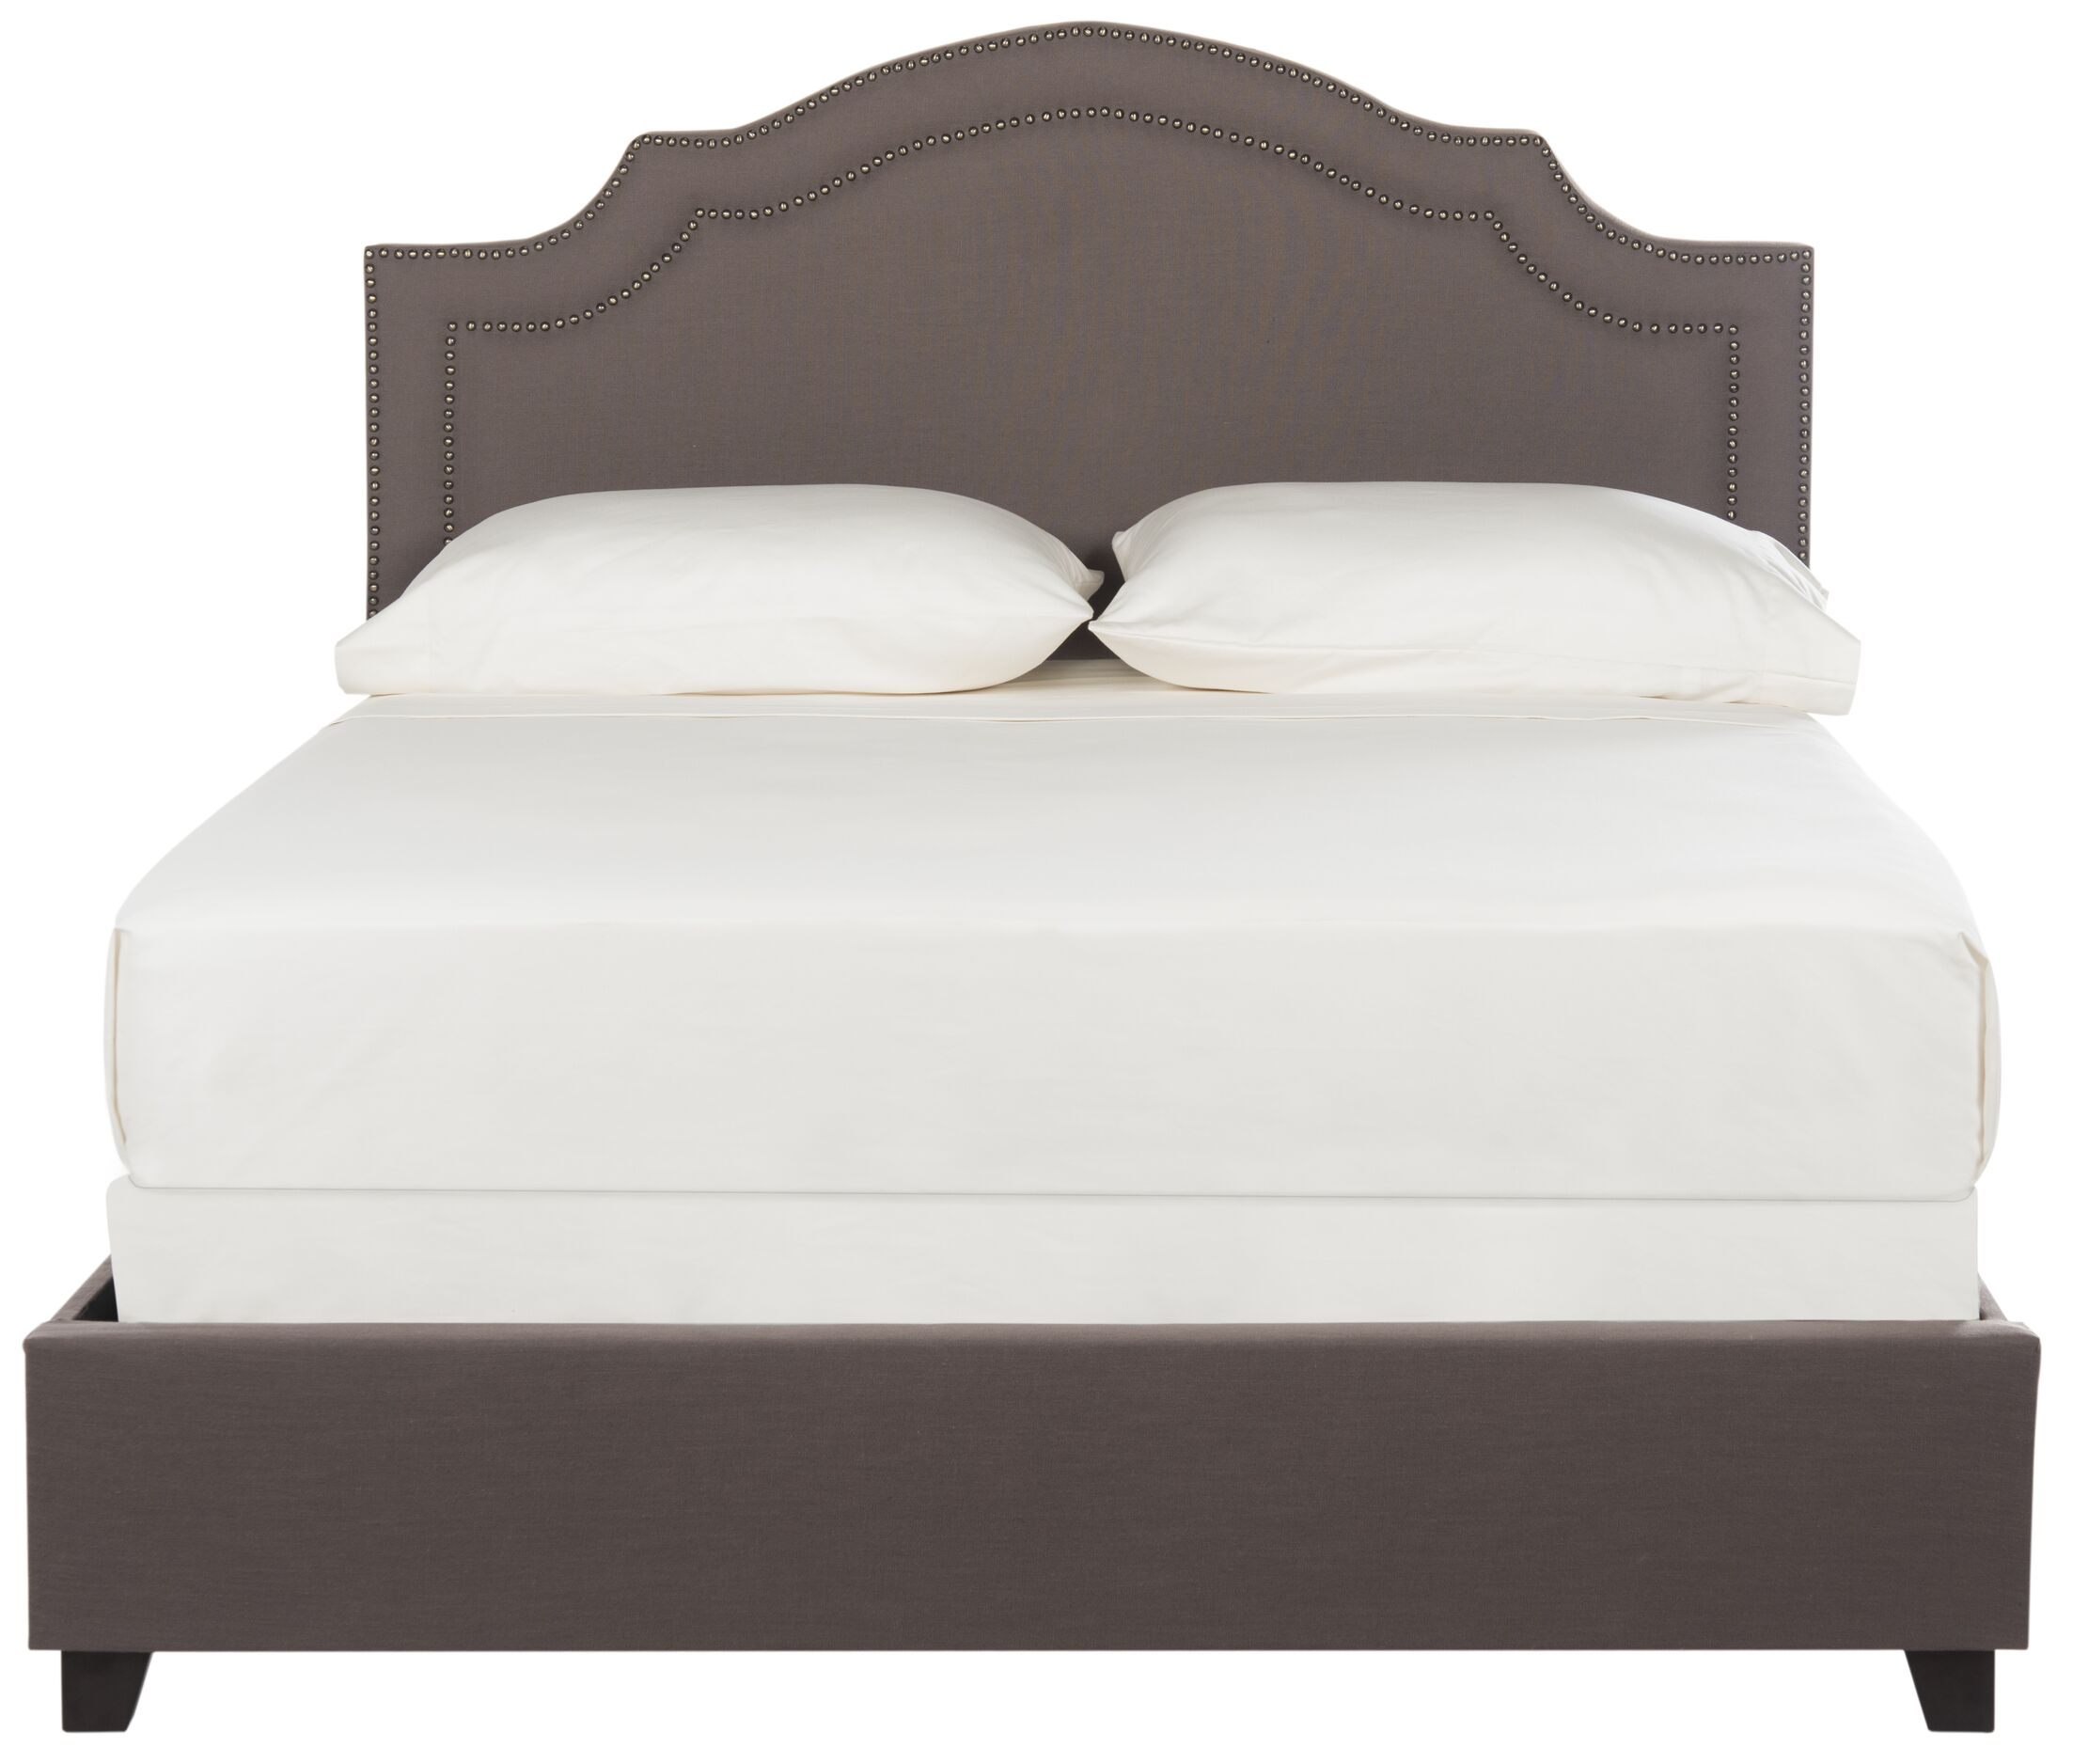 Avanley Upholstered Panel Bed Size: Queen, Color (Upholstery/Nailhead): Dark Taupe/Brass